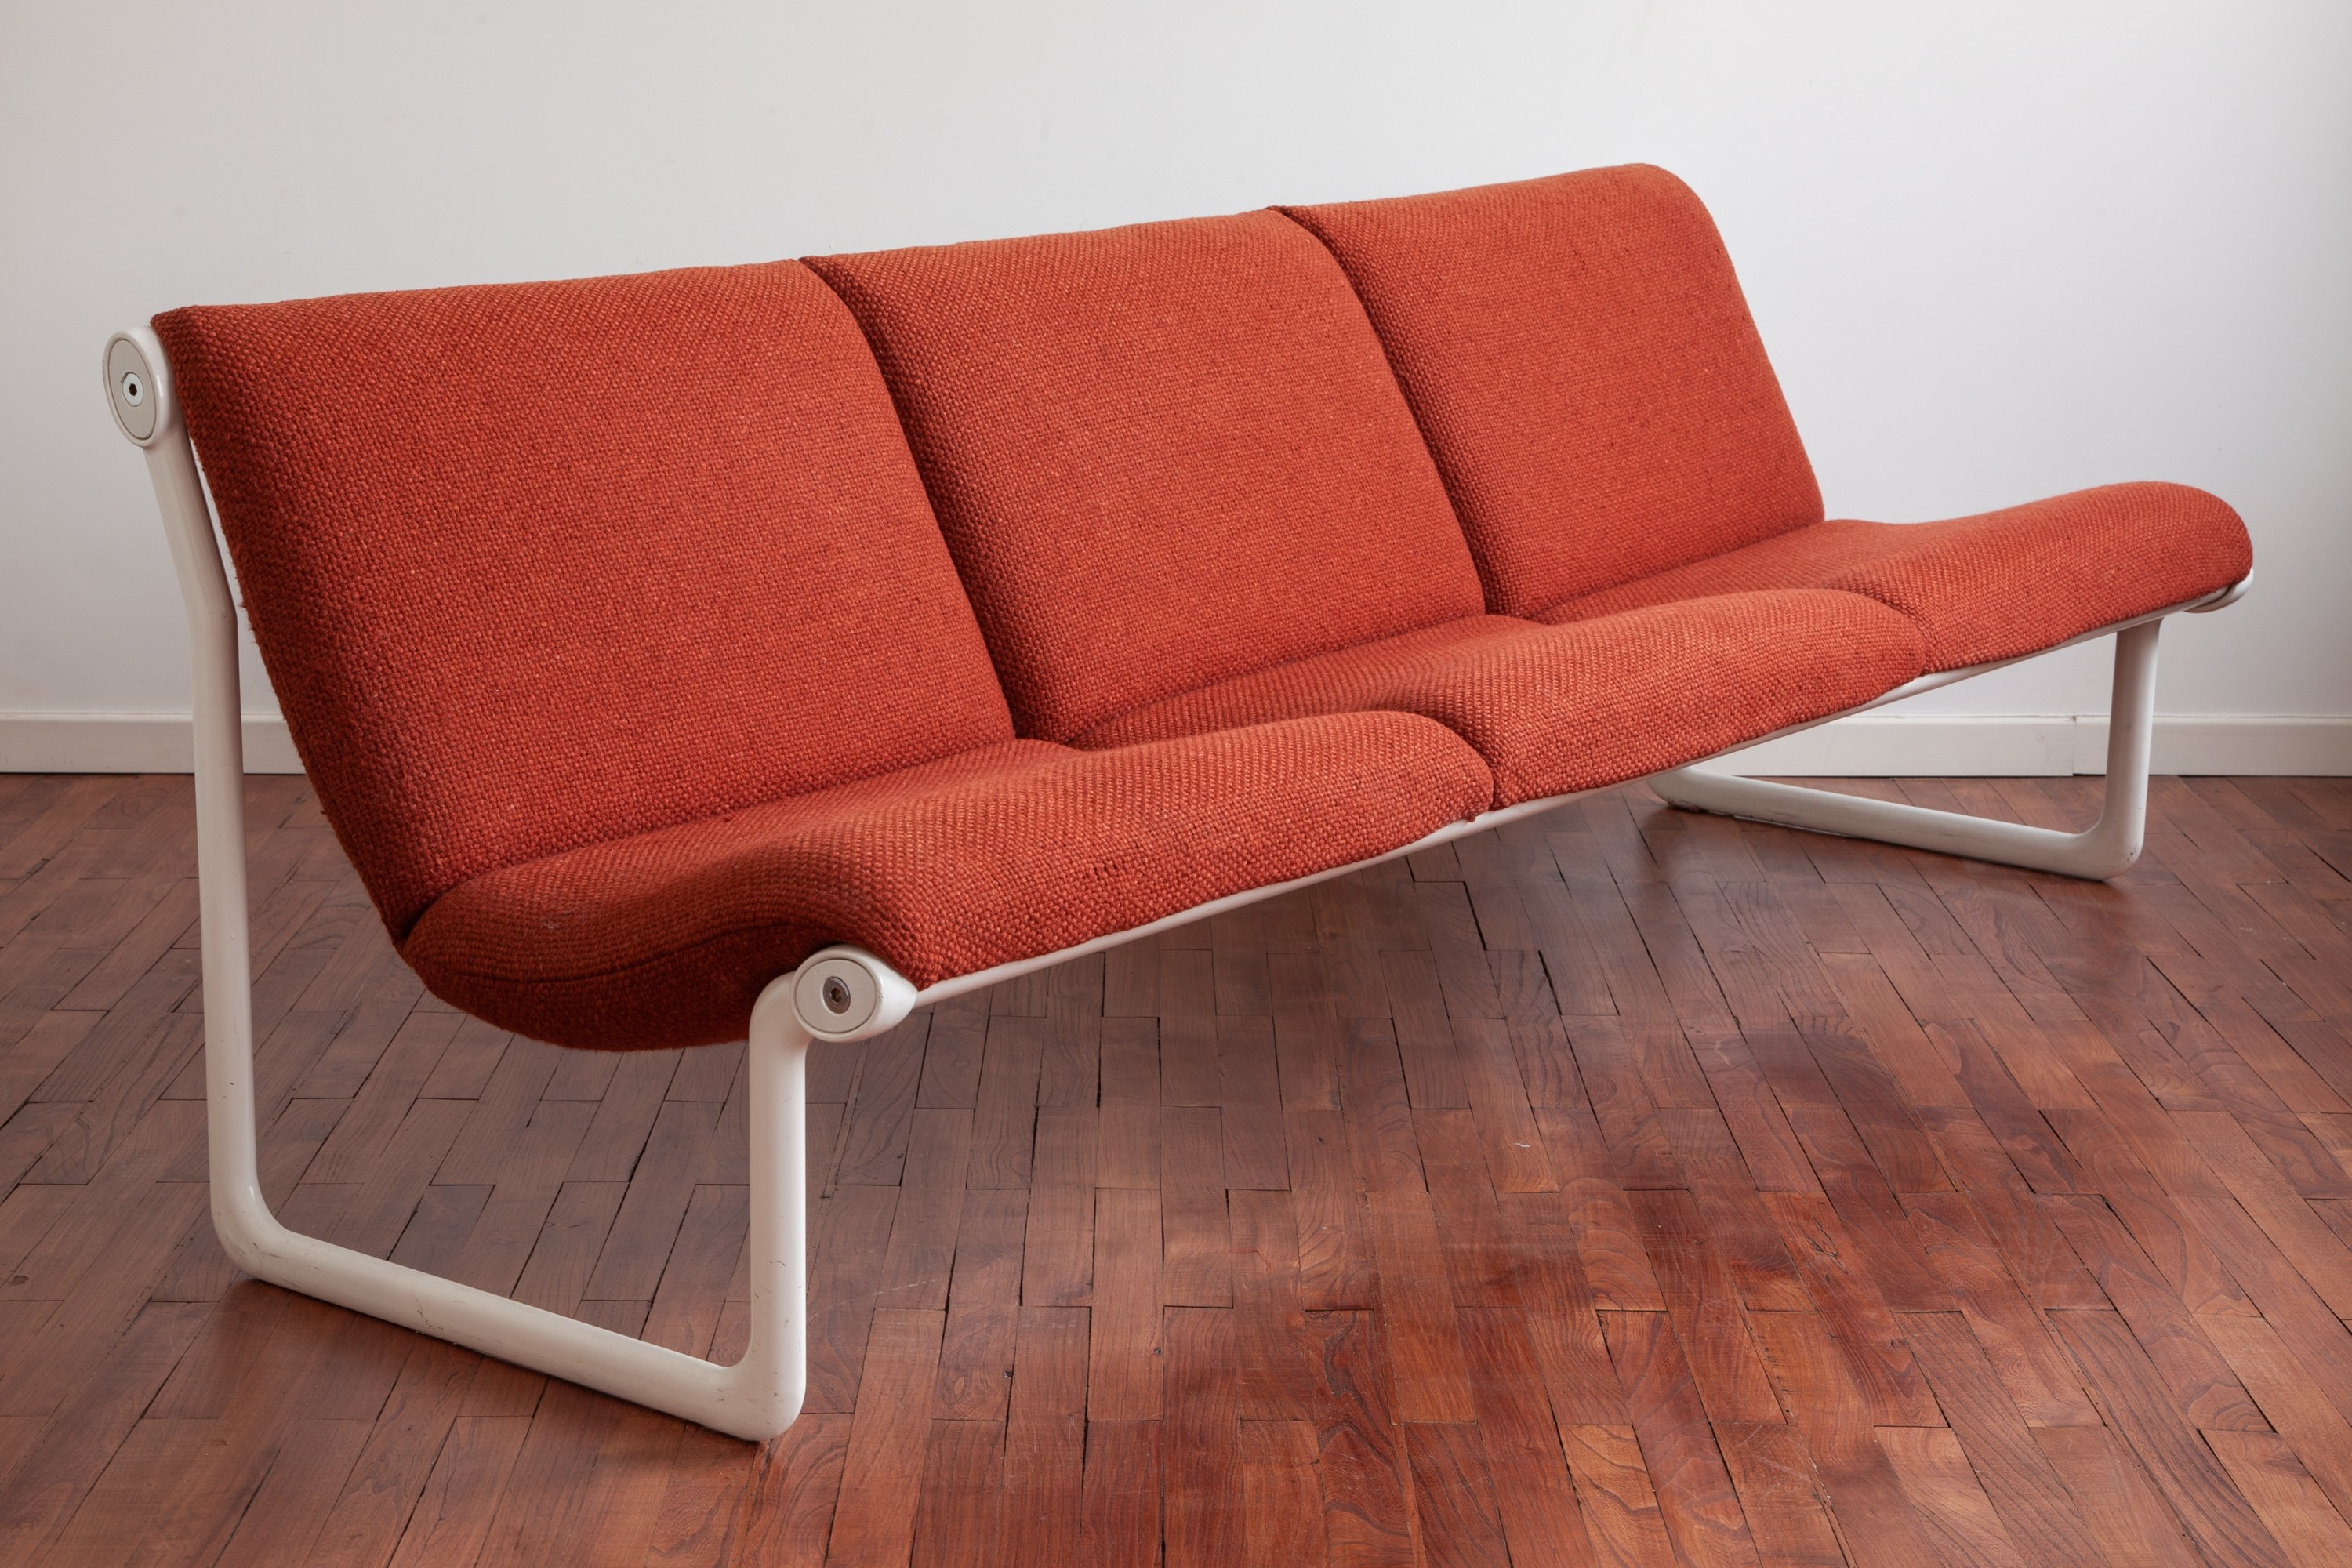 Iconic Knoll Sling Sofa By Bruce Hannah